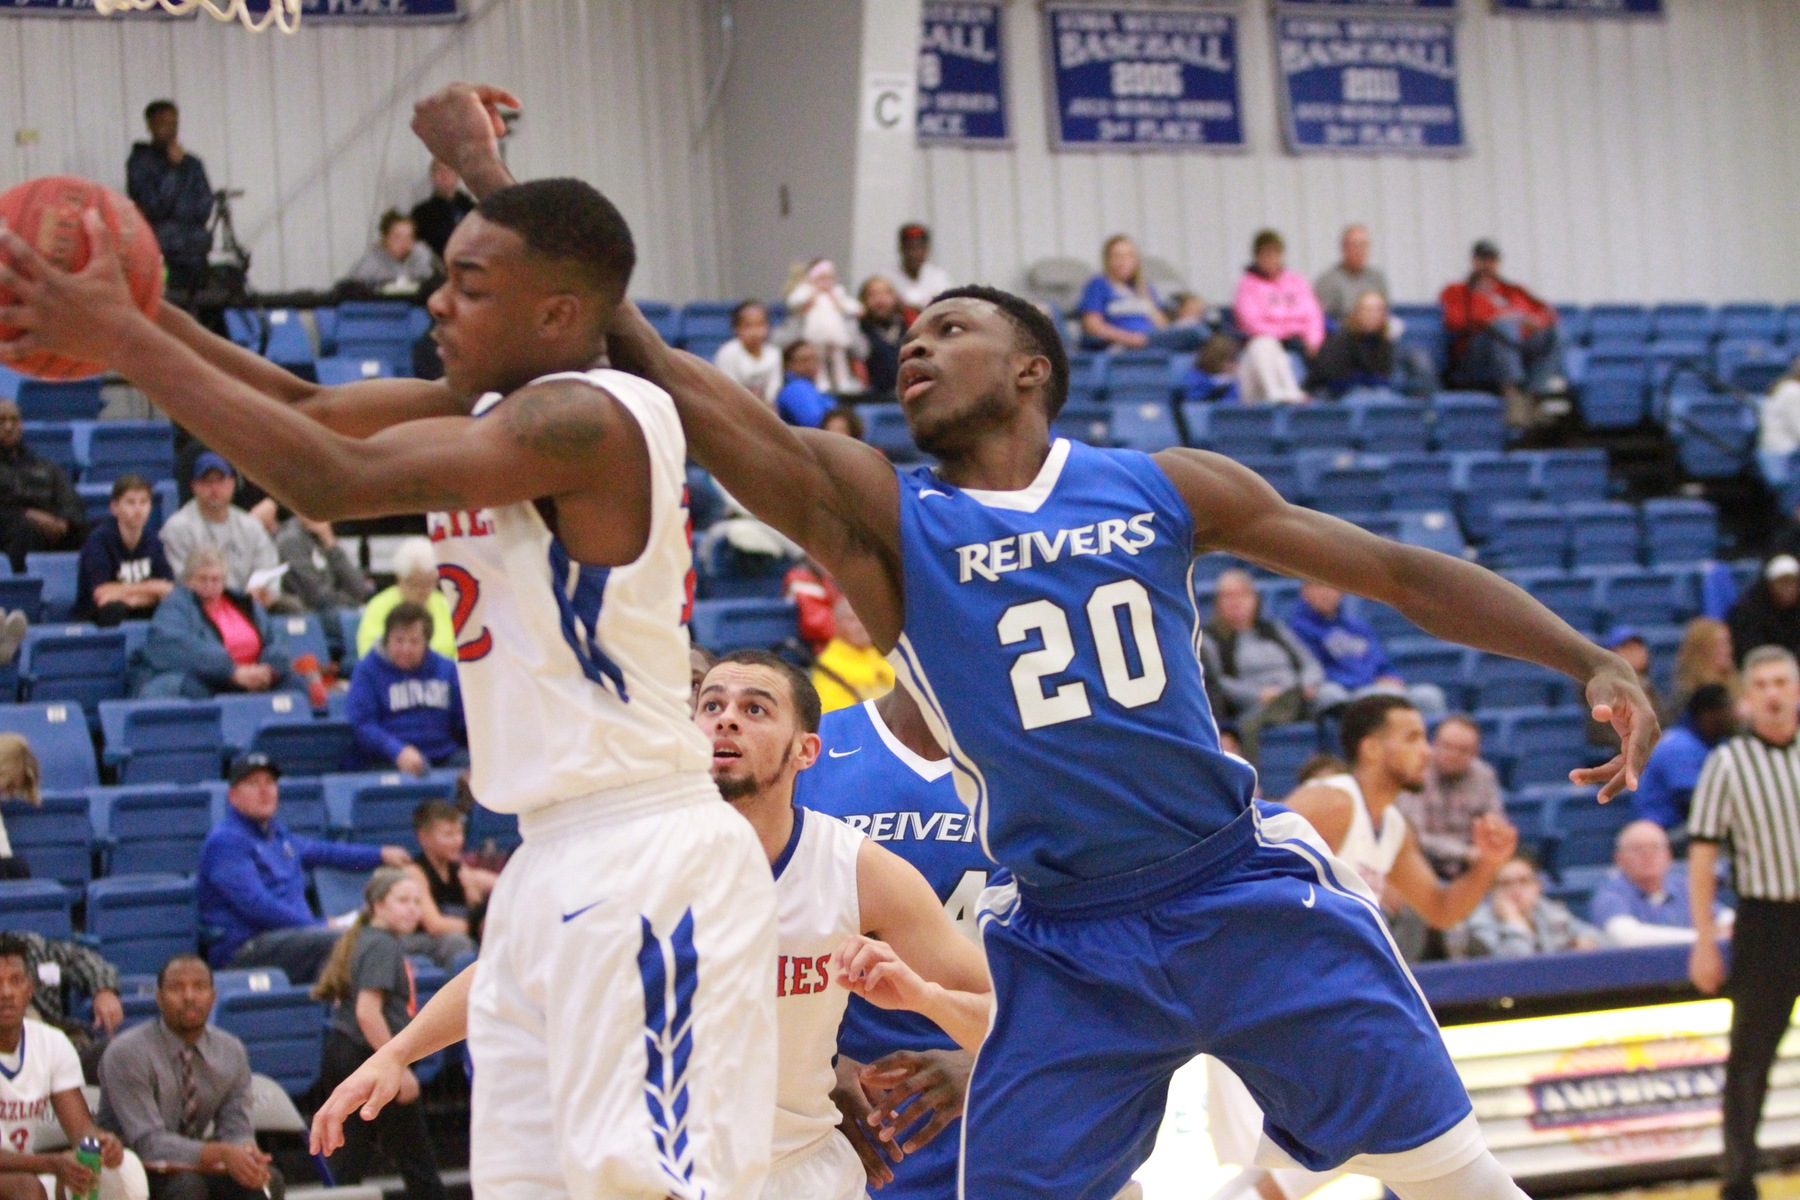 Steph Ayangma and his Reiver teammates dropped back to back games for only the first time all season in their 77-59 loss at Marshalltown. After four out of the last five games on the road, the Reivers return to Reiver Arena this Saturday night (2/3/18).